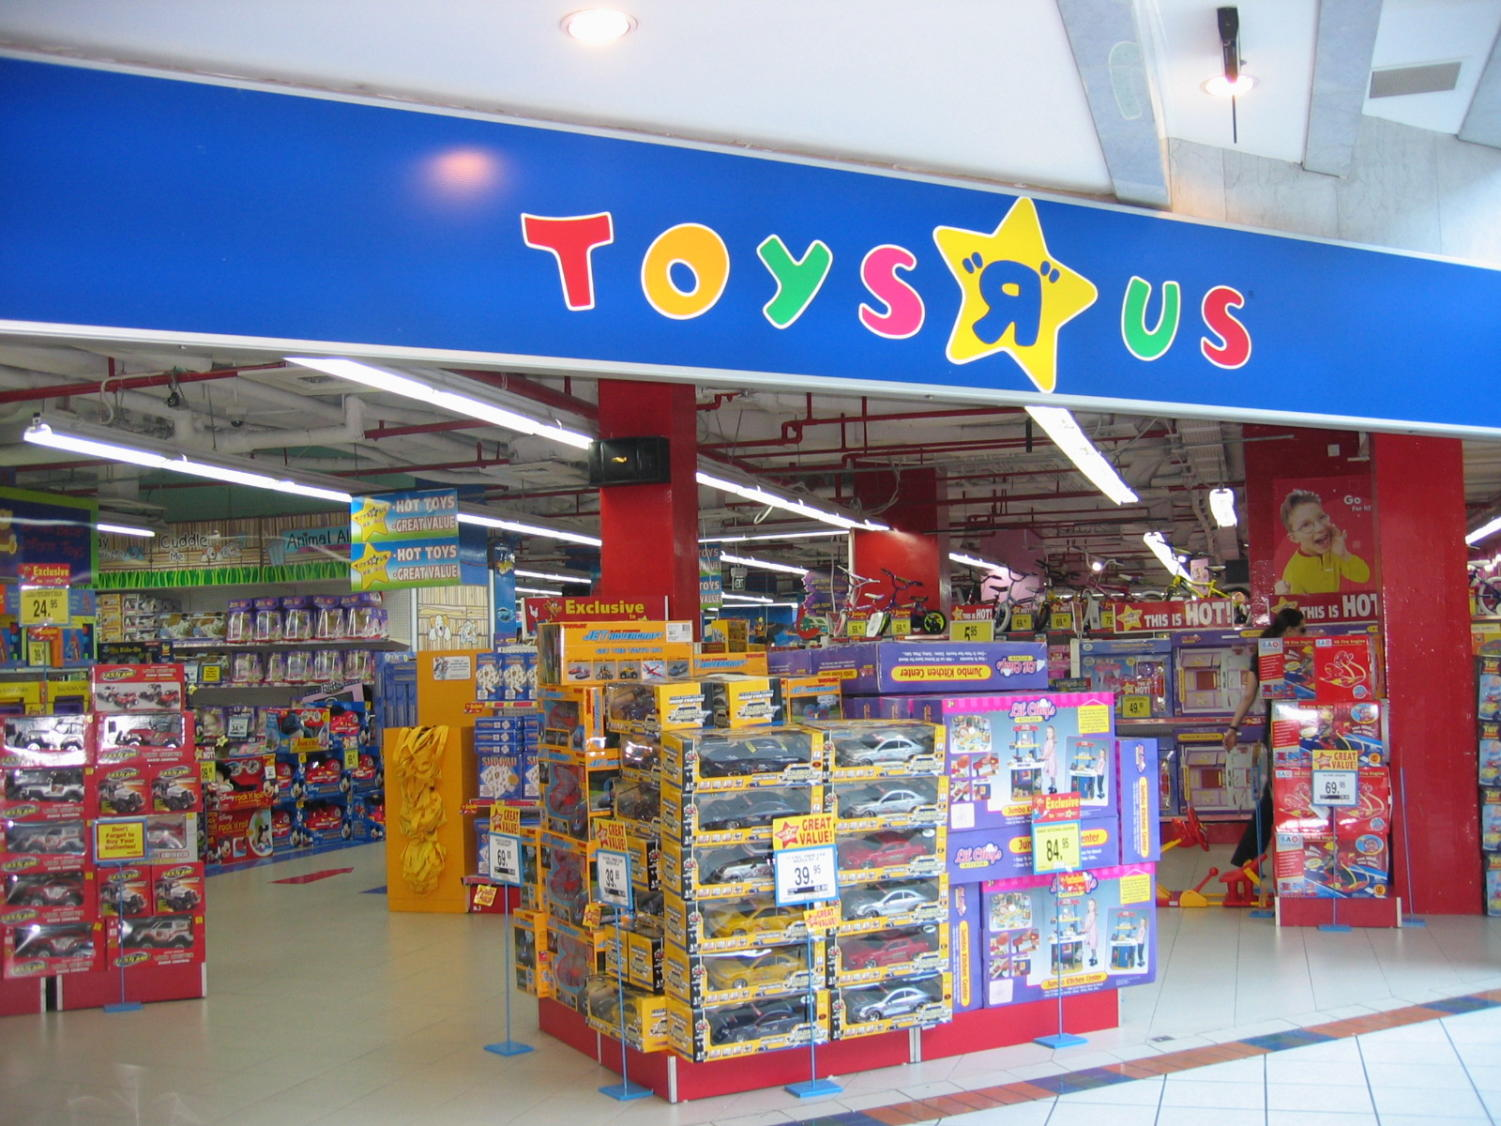 Toys 'R' Us is closing down.